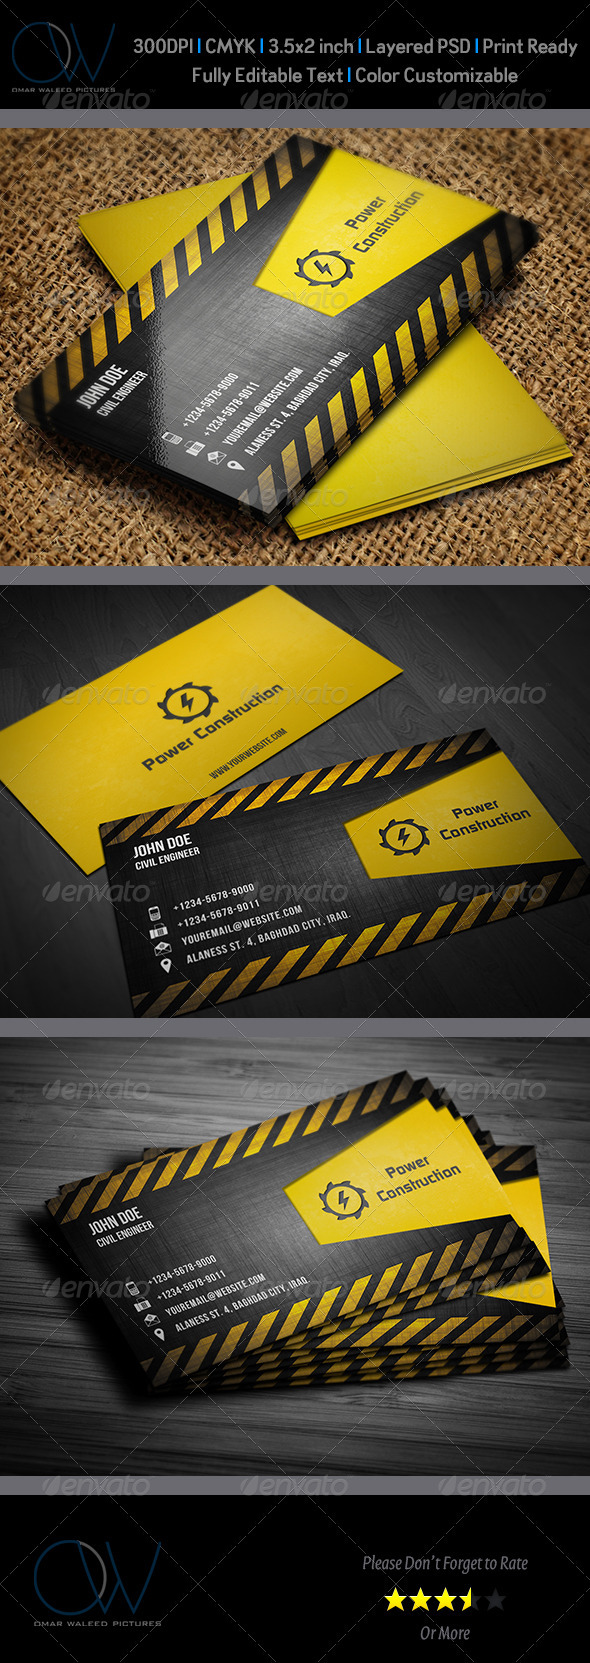 Construction Business Card - Creative Business Cards